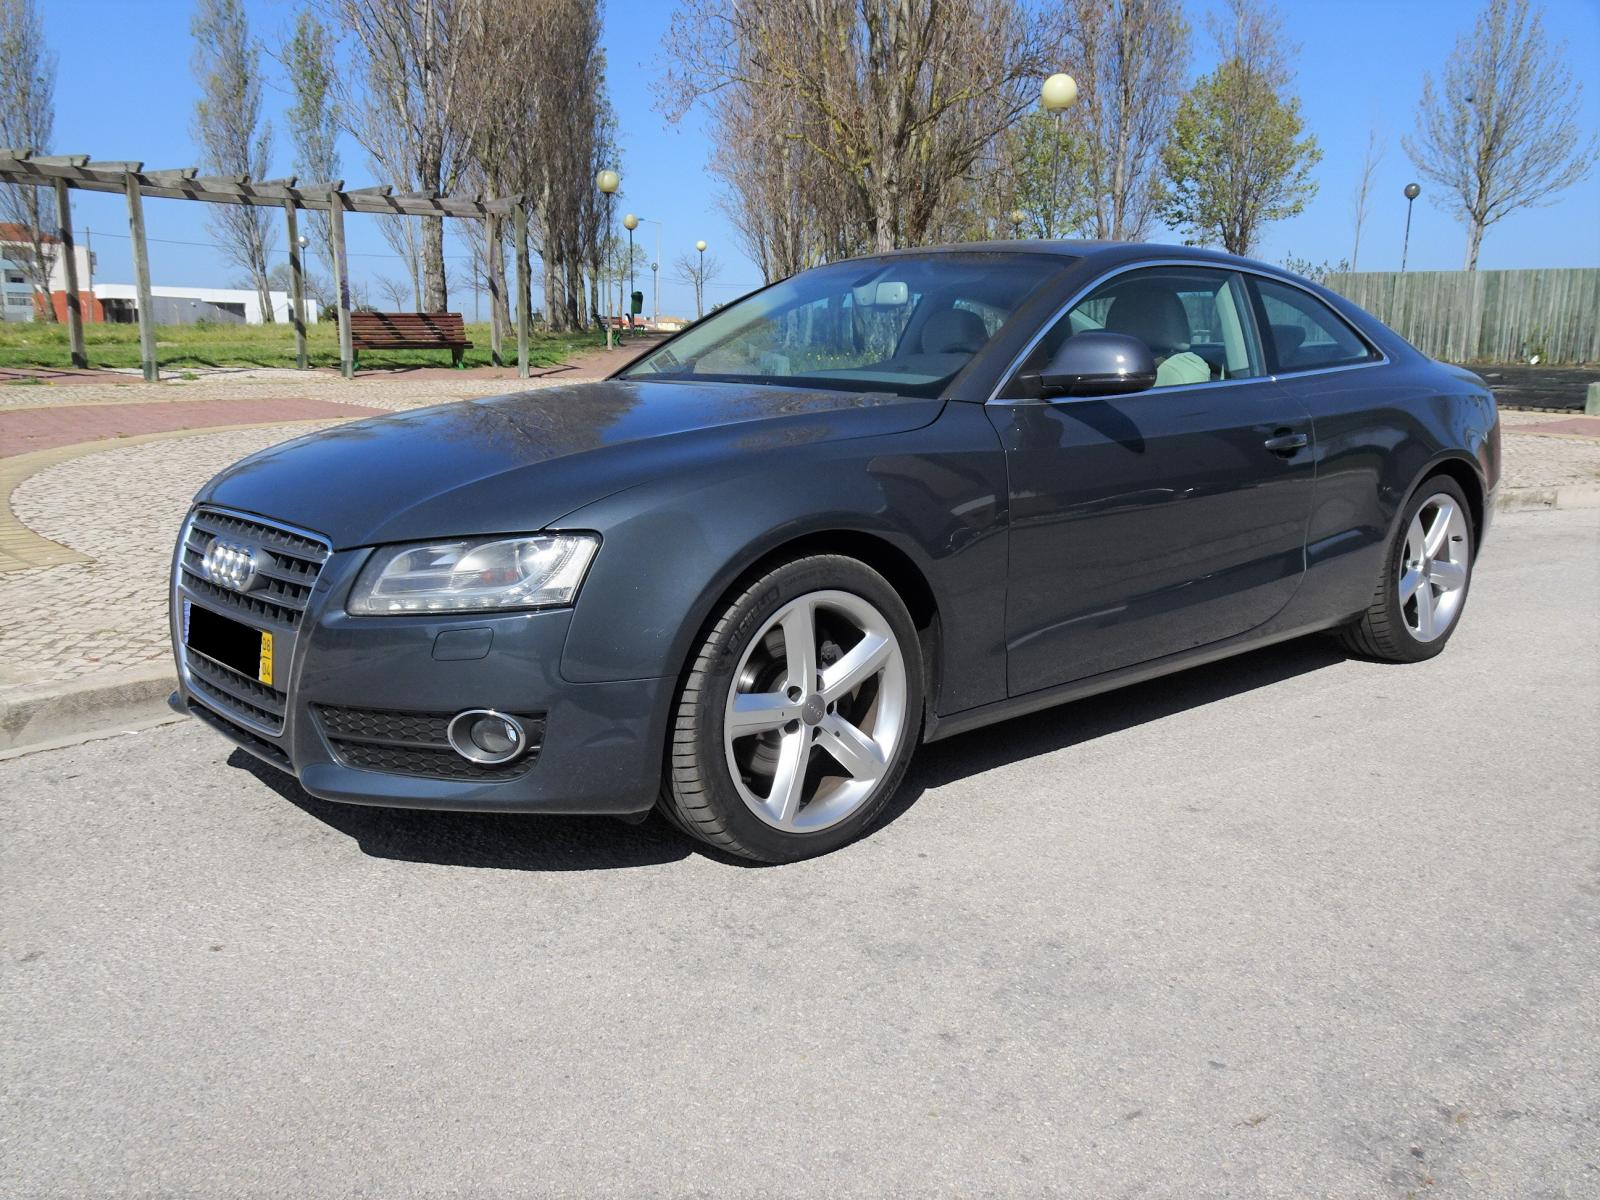 Audi-A5 2.7 TDI Coupe Multitronic